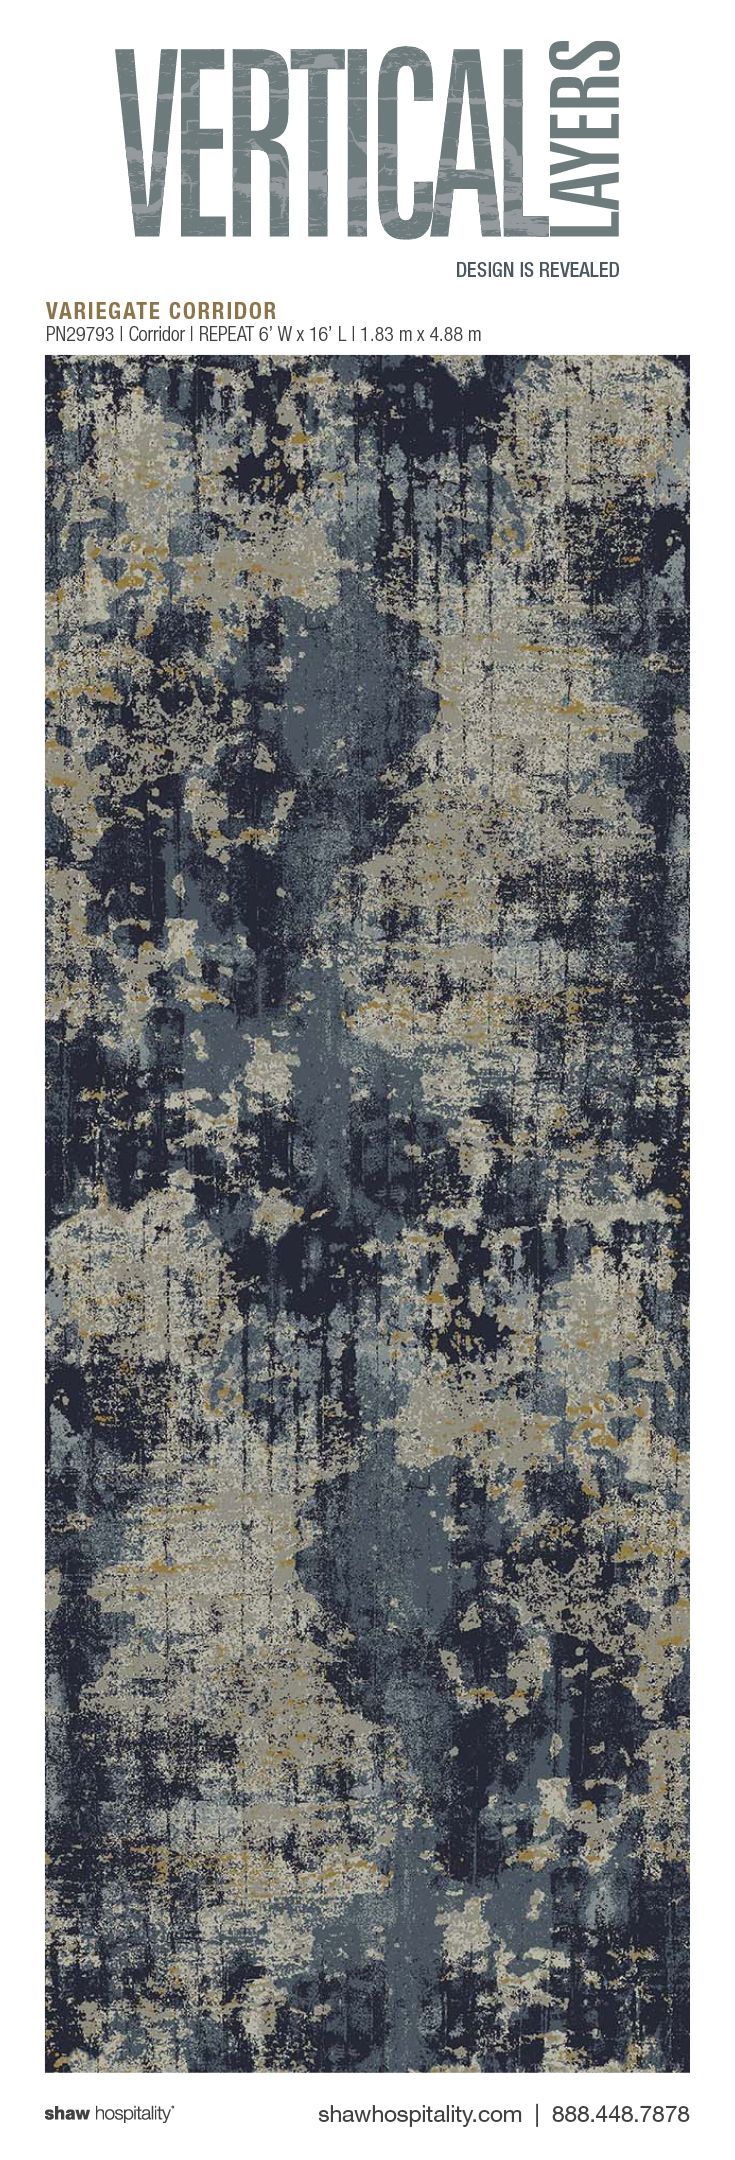 Variegate Corridor Pn29793 Hospitality Carpet For Commercial Interiors Design For Hotel Spaces Lobby Hotel Carpet Rugs On Carpet Carpet Design